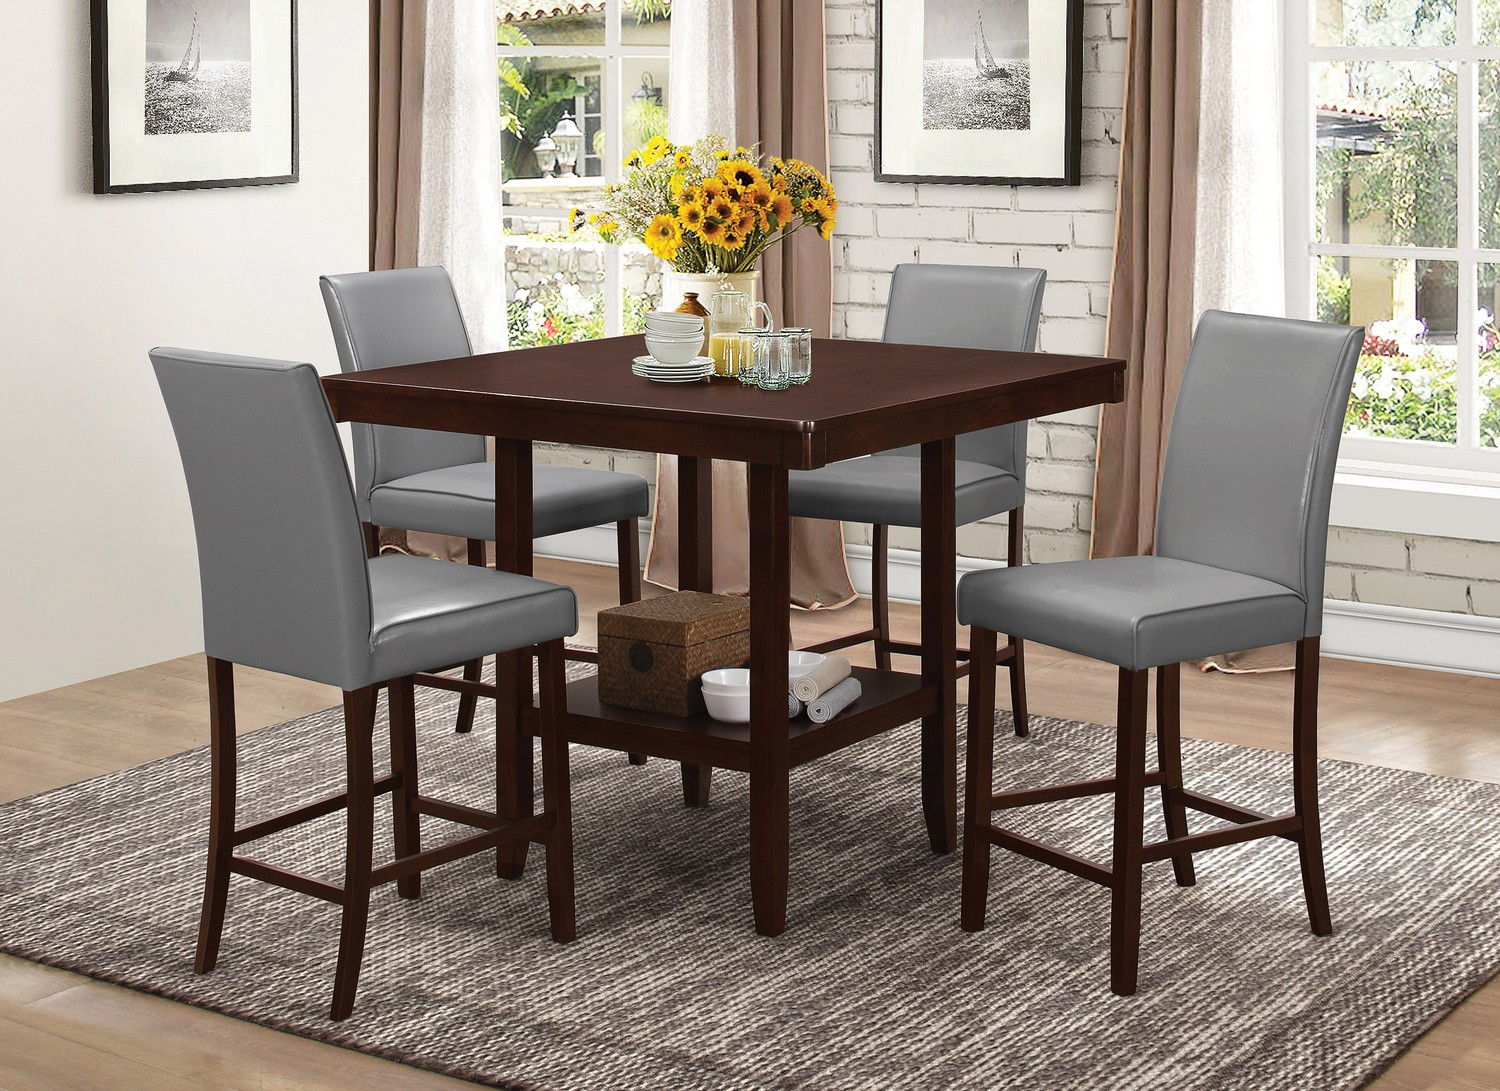 Coaster Fattori Counter Height Dining Set - Espresso/Grey Leatherette